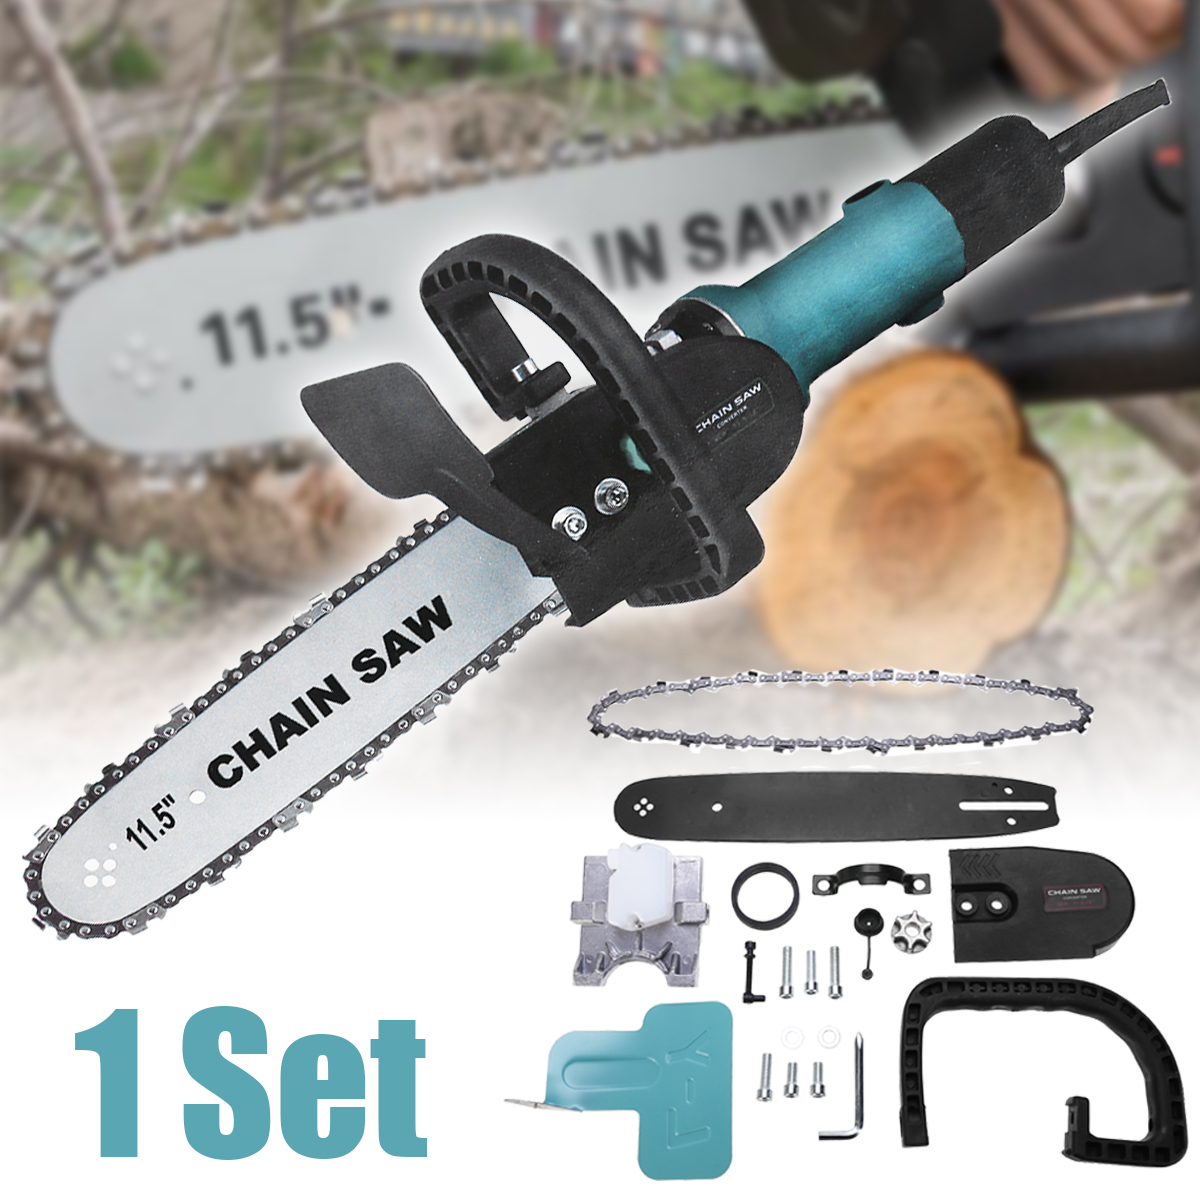 Multifunction Handheld Angle Grinder Logging Saw Electric Saw Chain For Garden Woodworking Tool Accessories